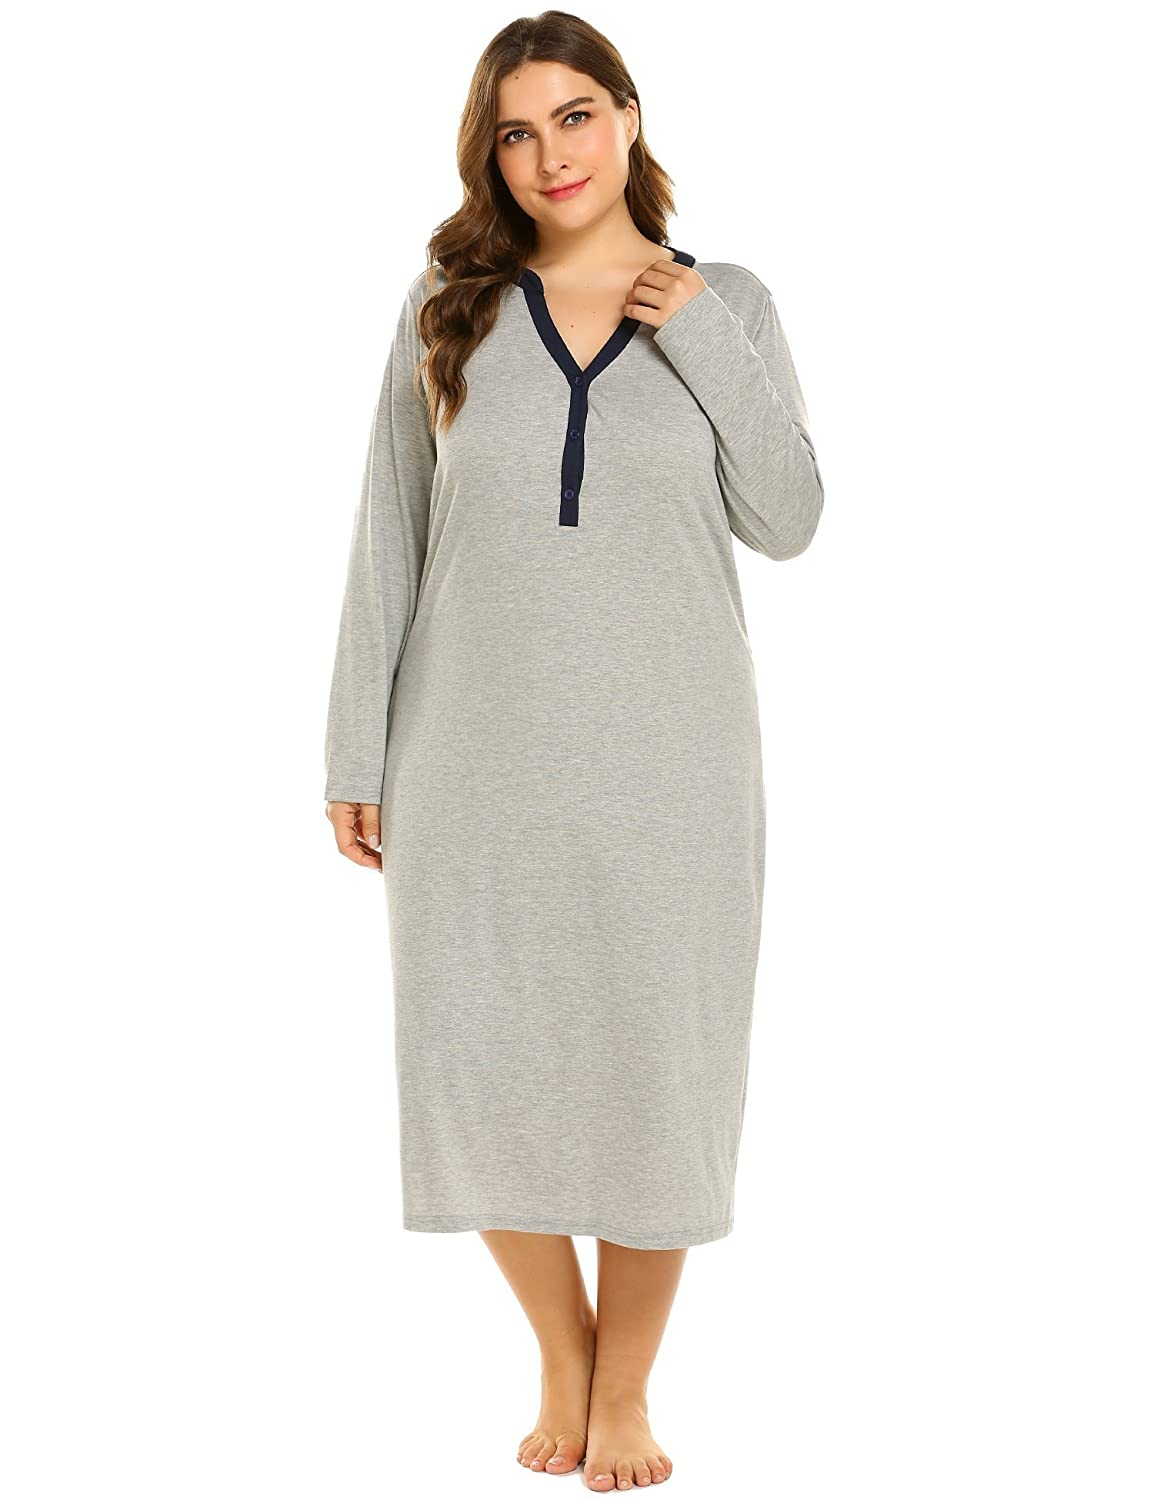 8a97a080e6949 IN VOLAND Sleepwear Women s Plus Size Cotton Knit Long Sleeve Nightgown V  Neck Sleep Shirt Dress(16W~24W) at Amazon Women s Clothing store